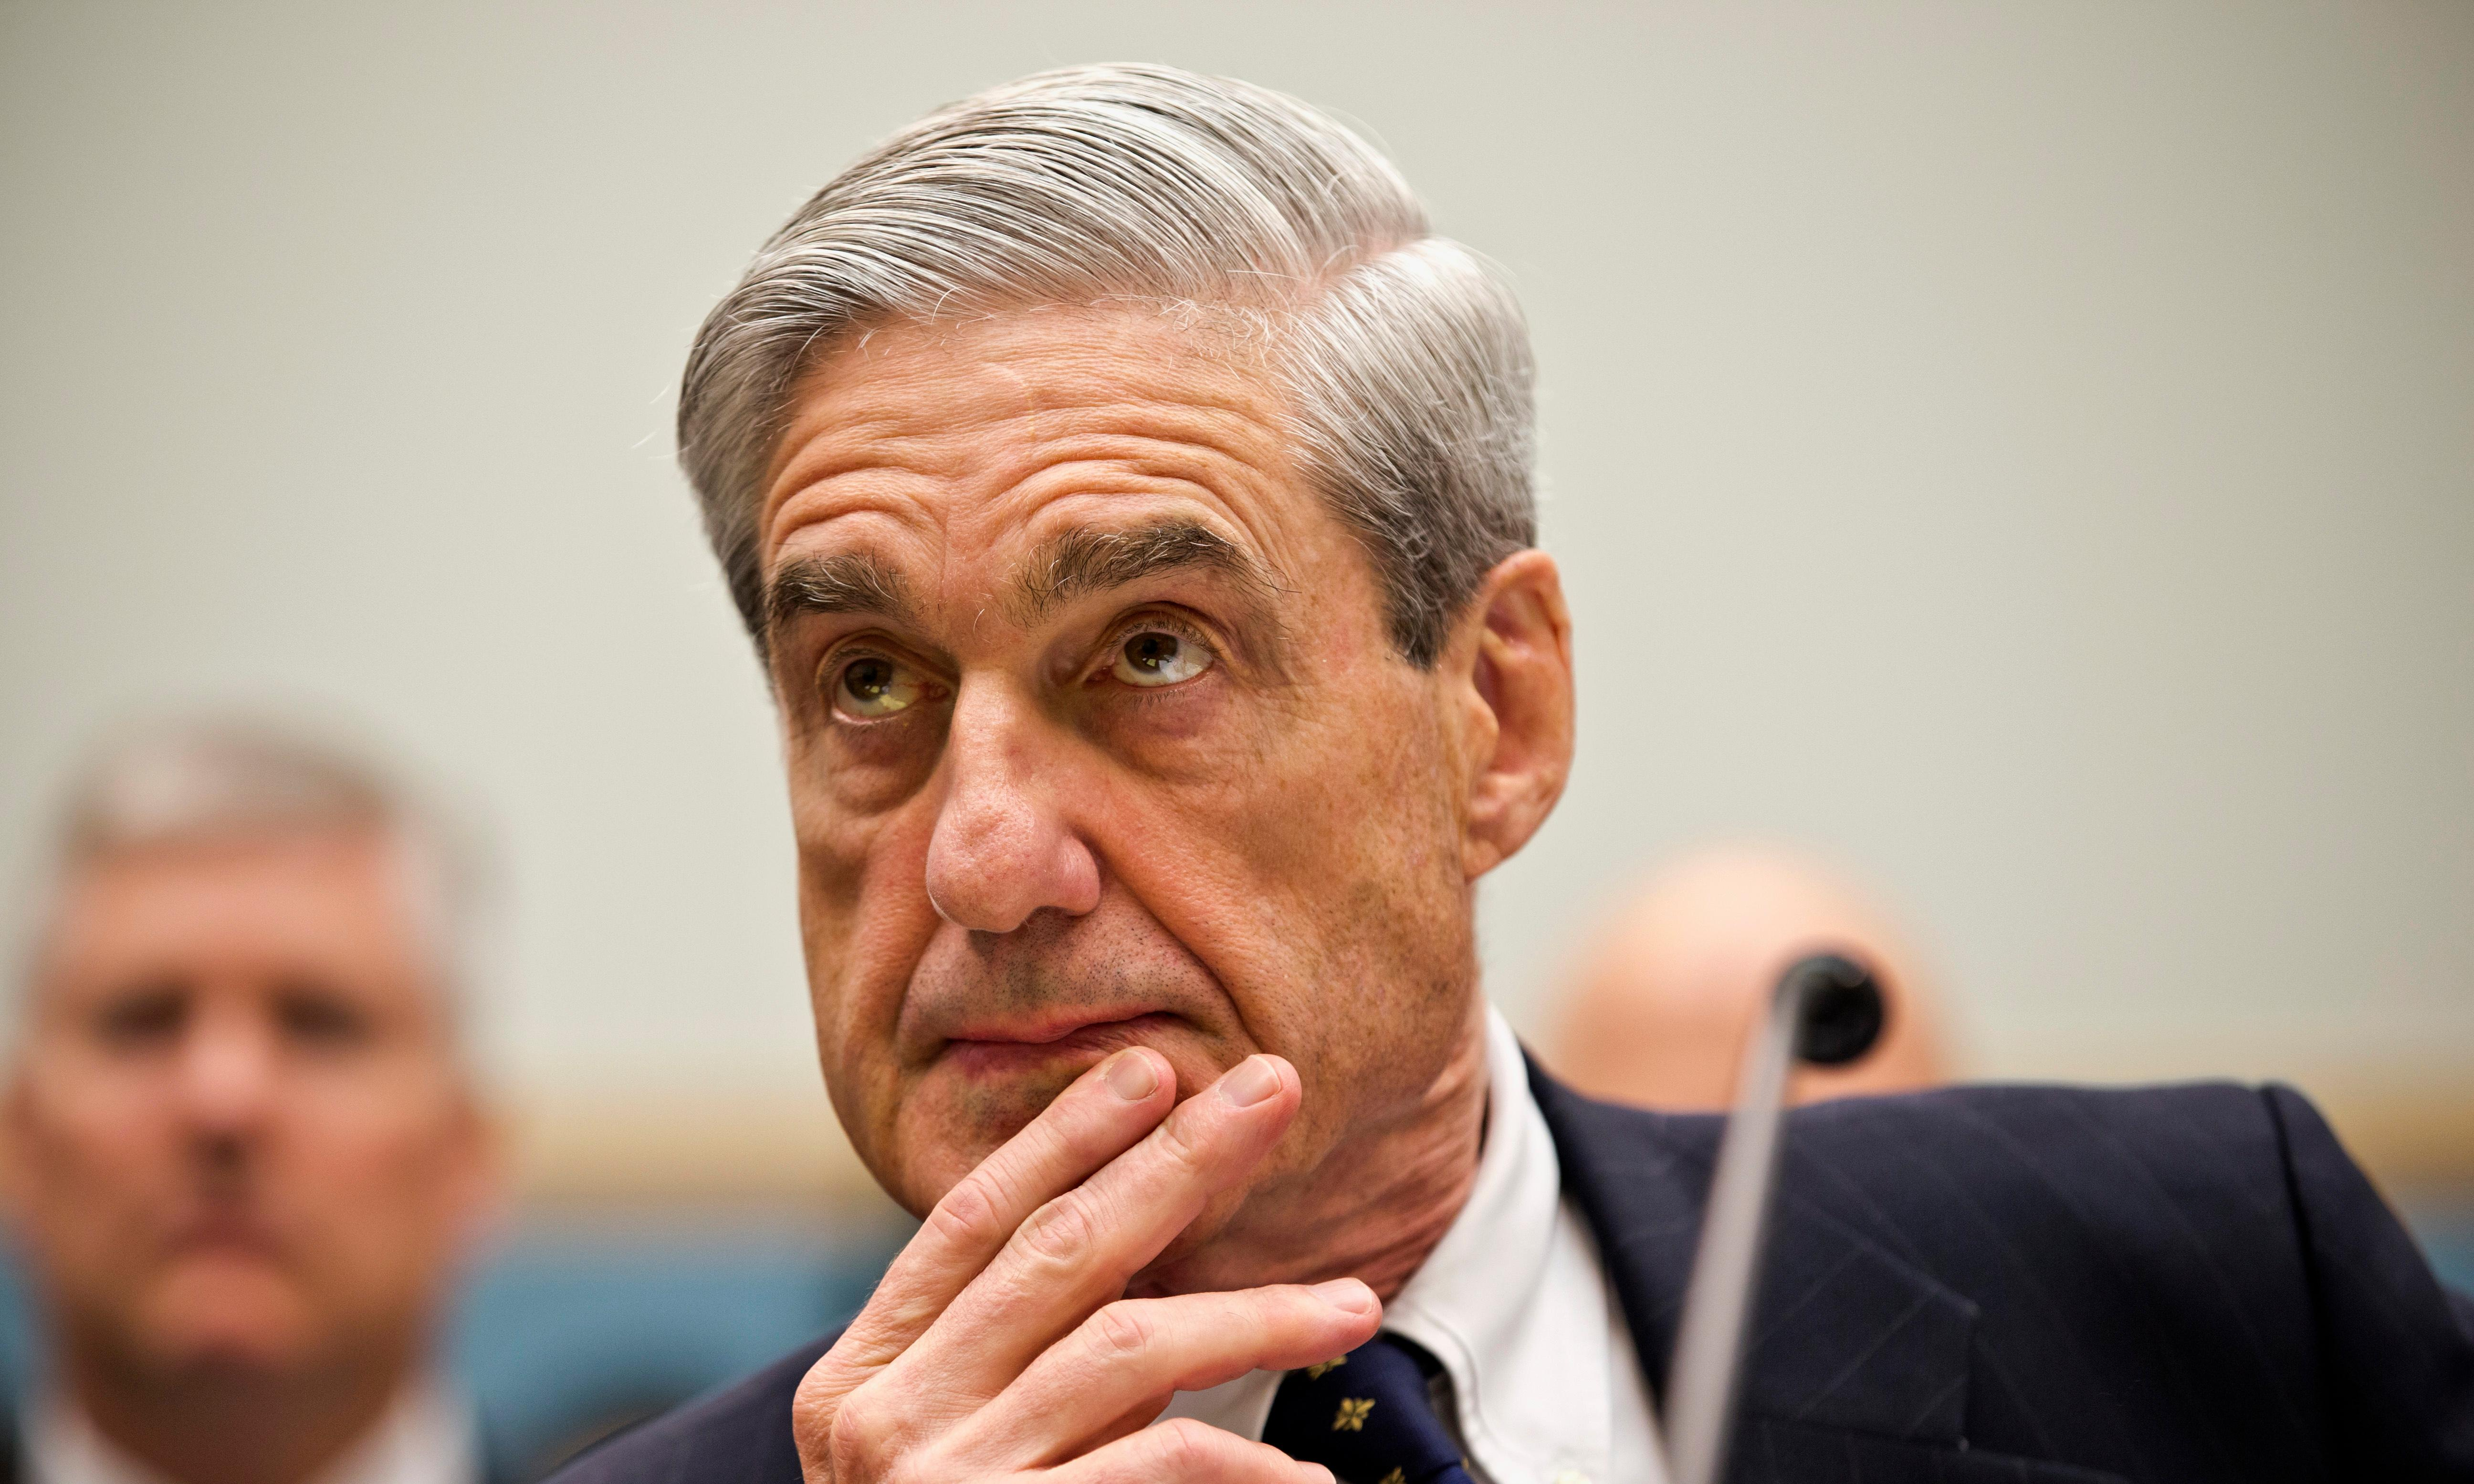 #Muellersgonna: internet mulls special counsel's Friday night plans